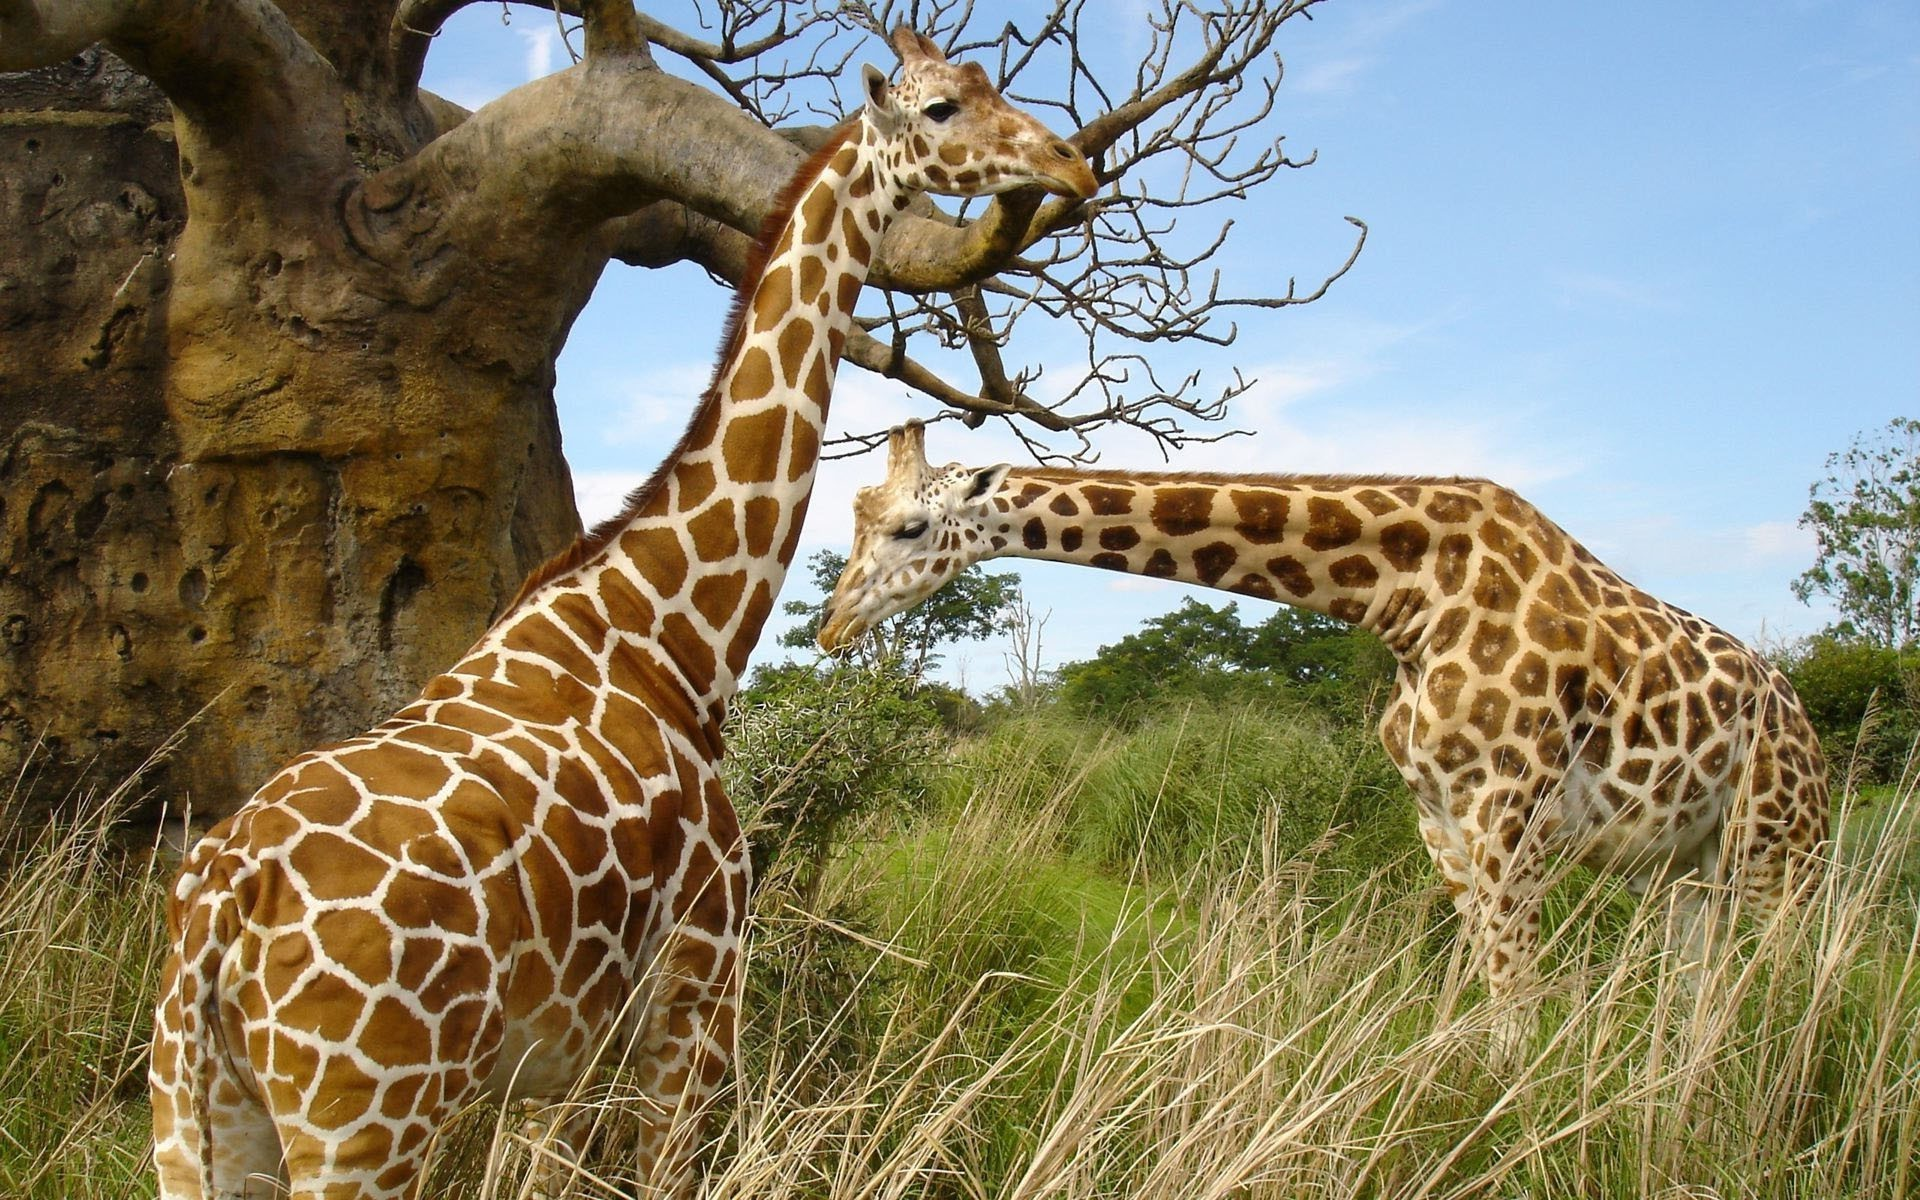 Two giraffe pluck the leaves of the trees